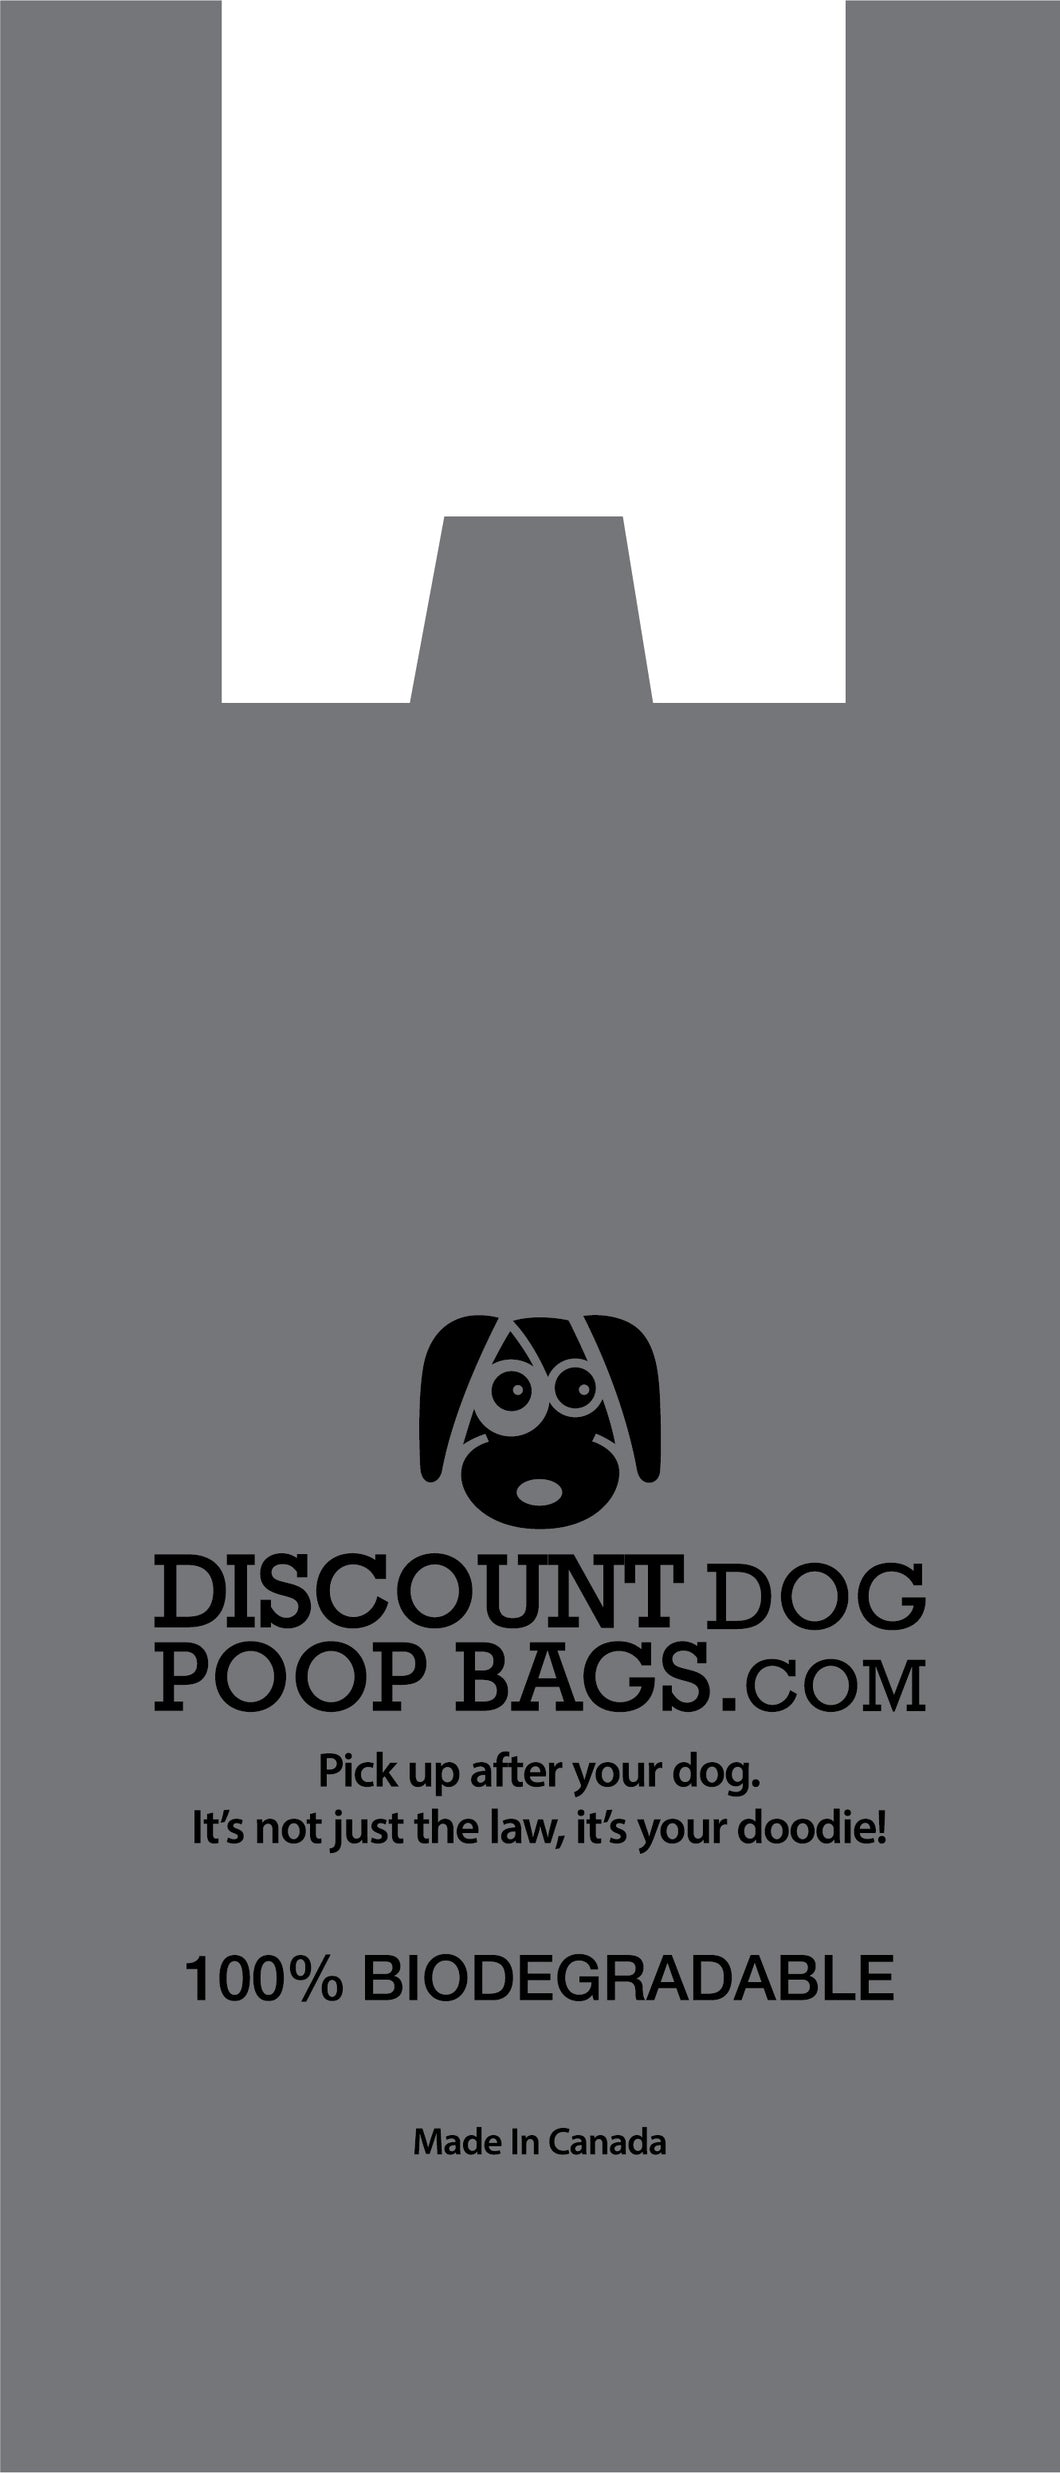 Biodegradable Poop Bags - Grey